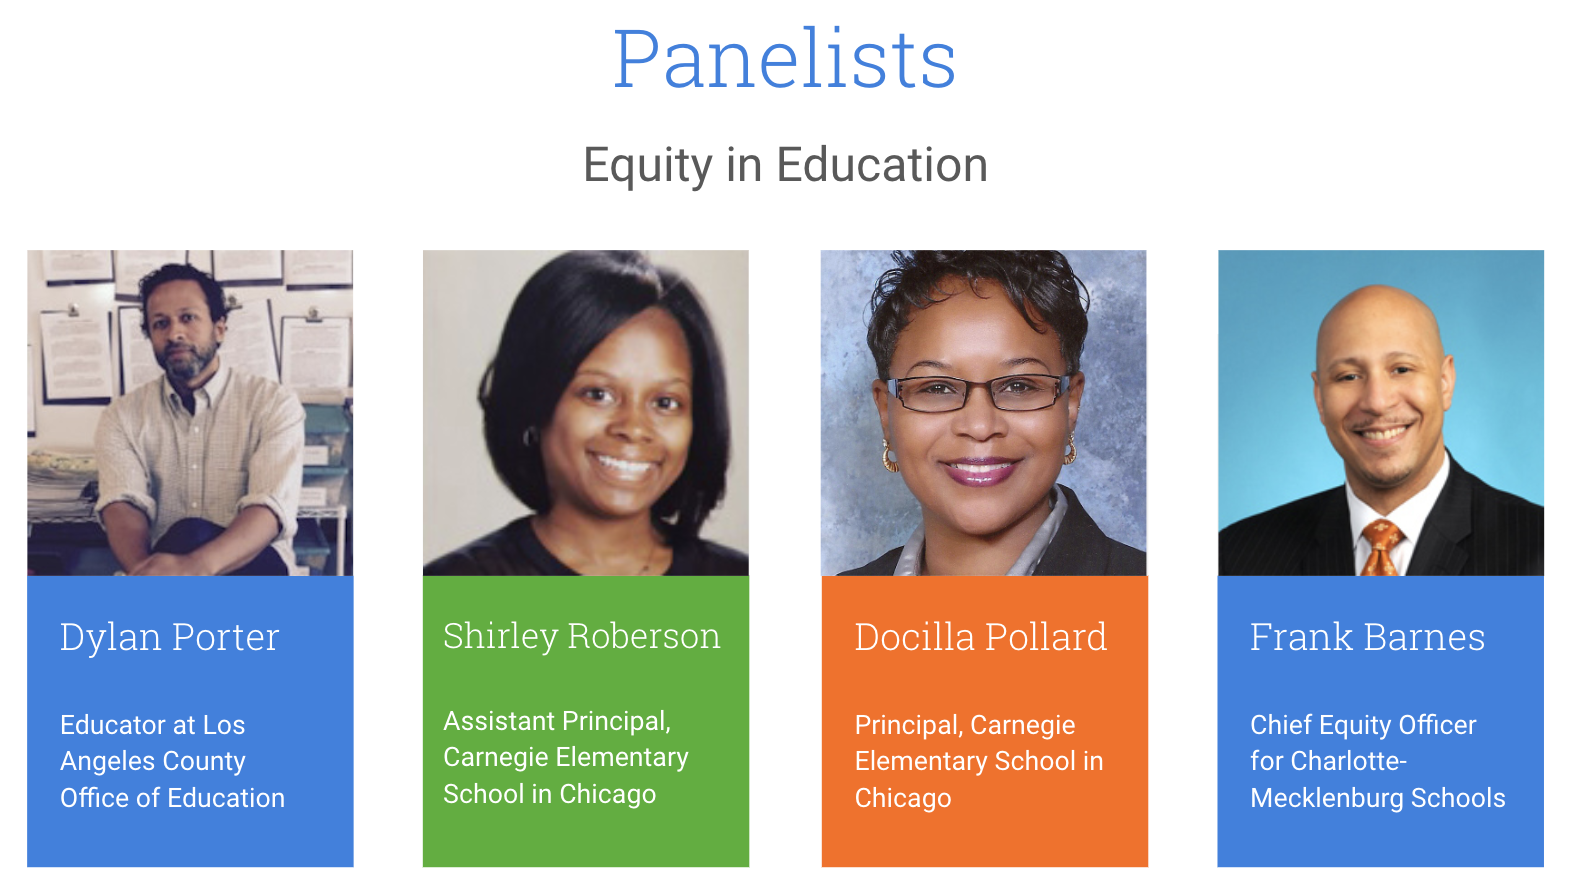 equity-education-panelists